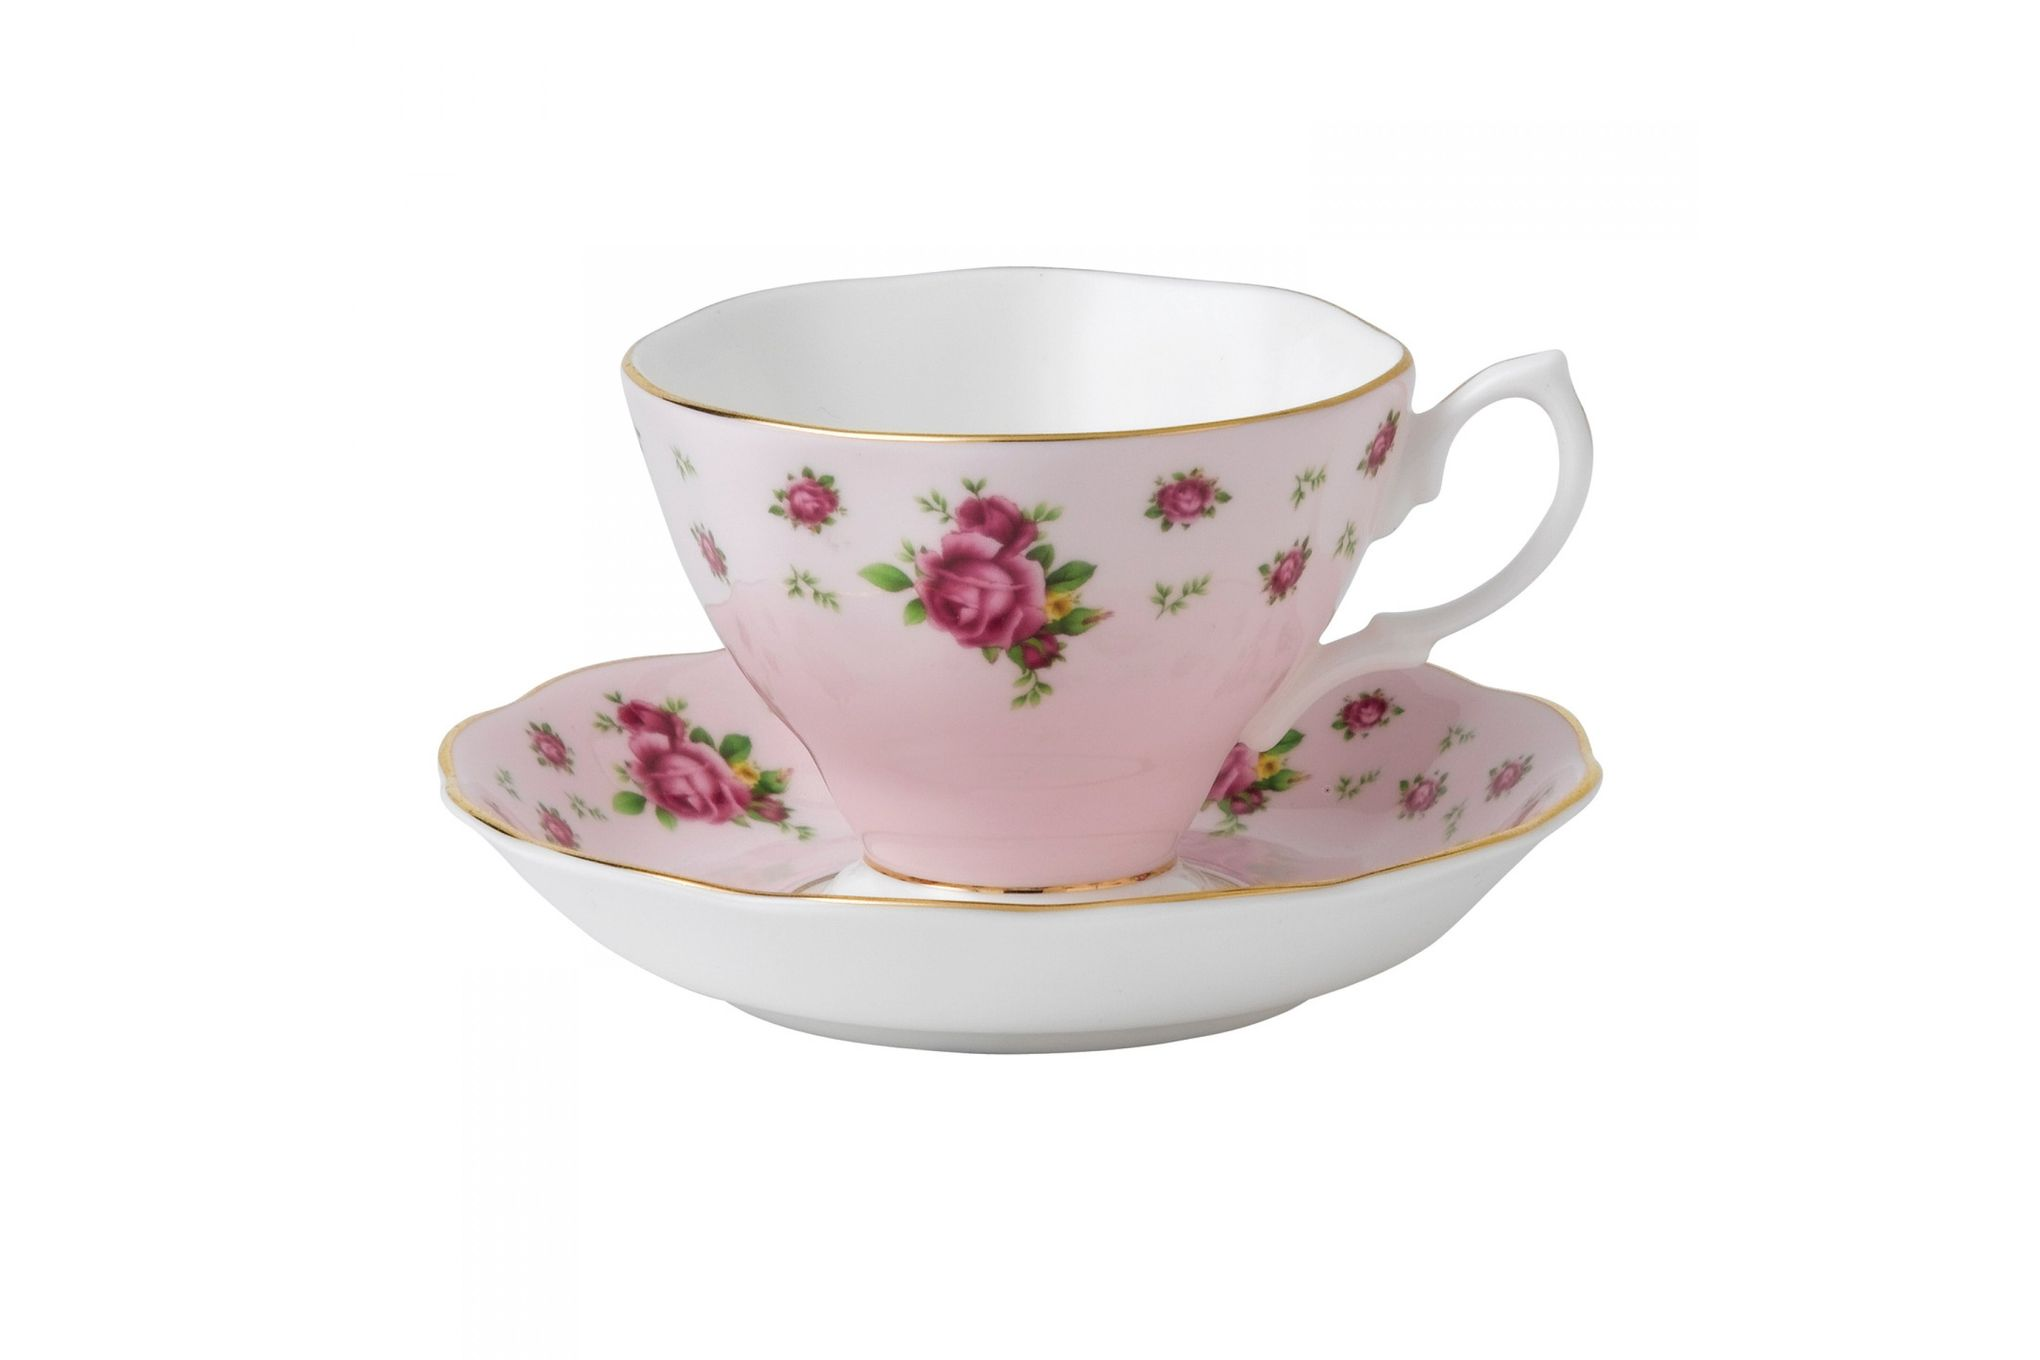 Royal Albert New Country Roses Pink Teacup & Saucer Boxed thumb 1